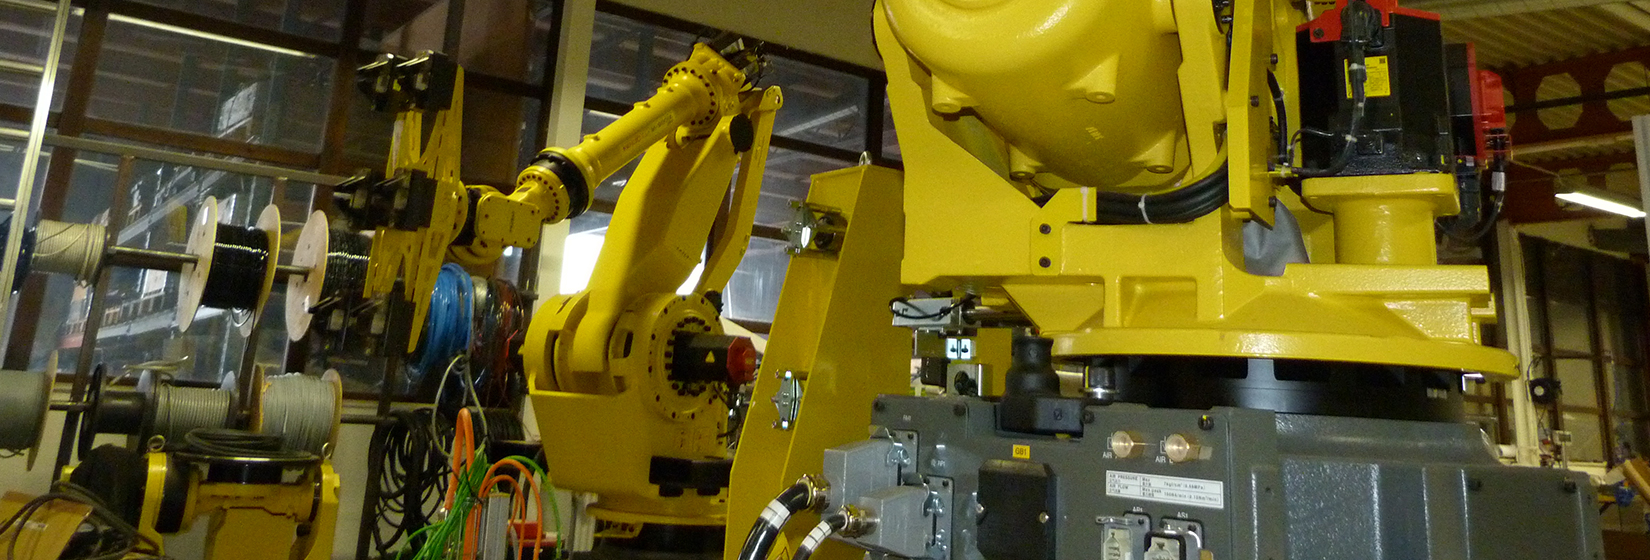 FANUC R-2000 and M-900 series ROBOTs